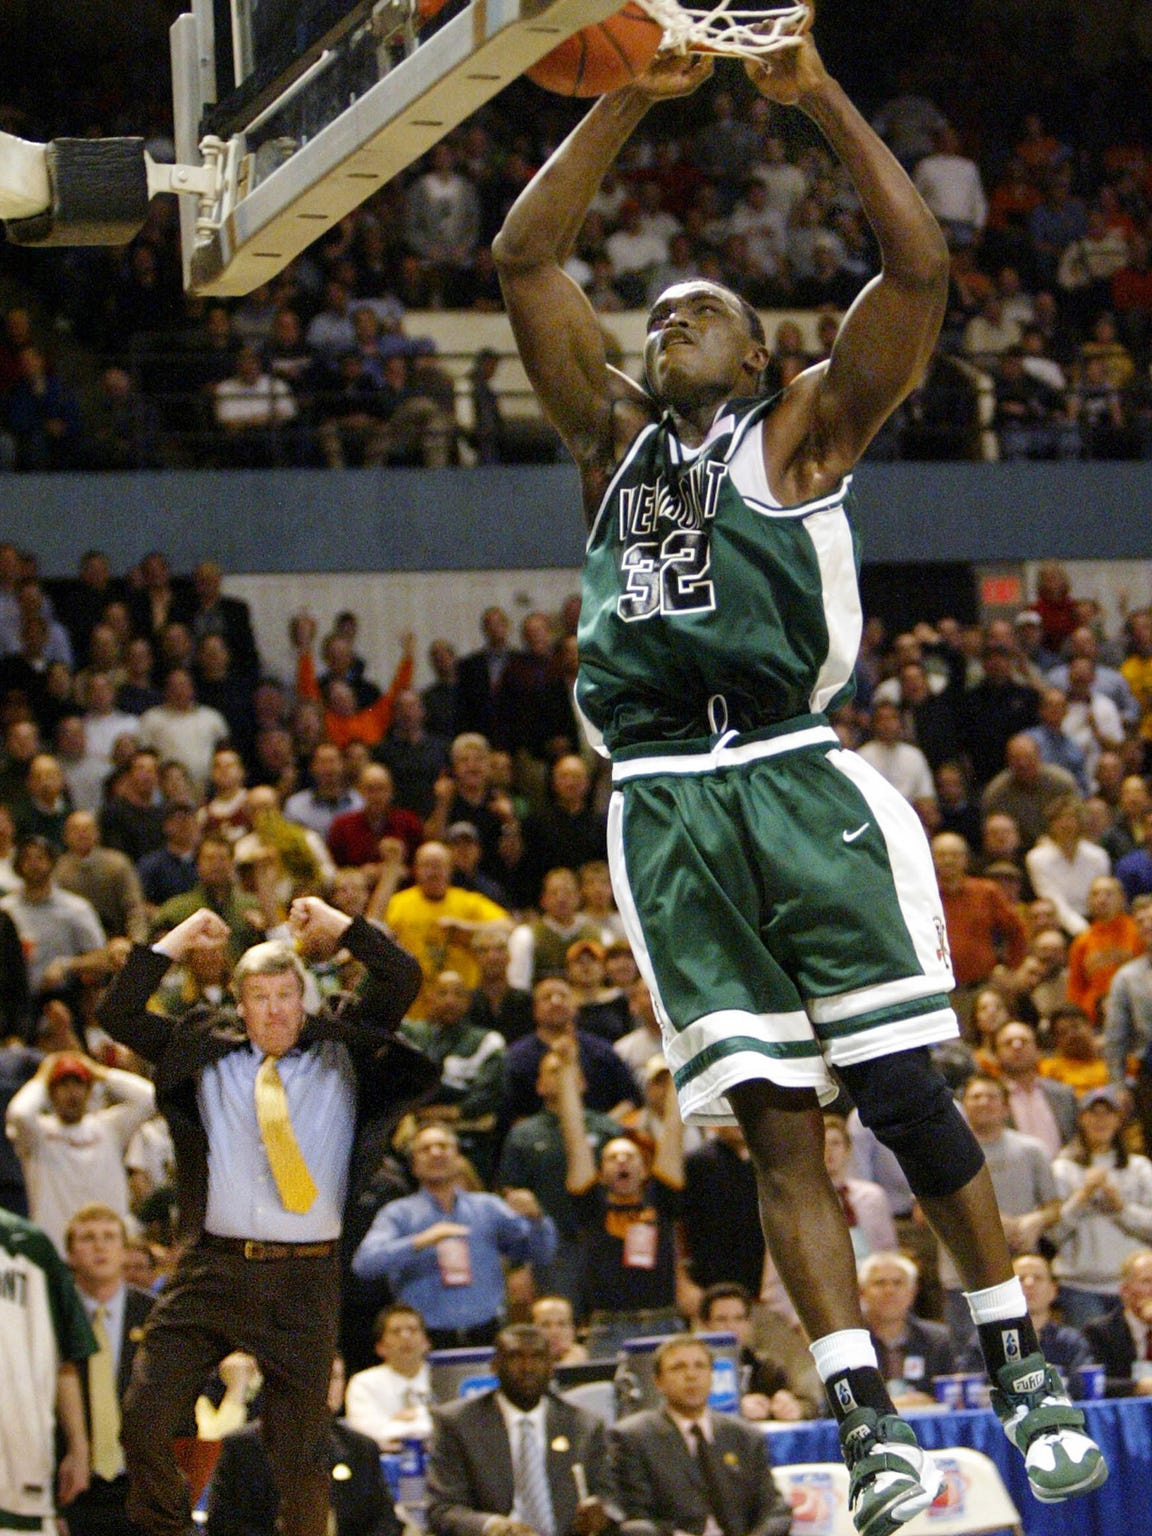 Vermont forward Germain Mopa Njila, right, throws down a dunk against Syracuse as coach Tom Brennan, left, celebrates on the sideline during the Catamounts' 2005 NCAA tournament victory